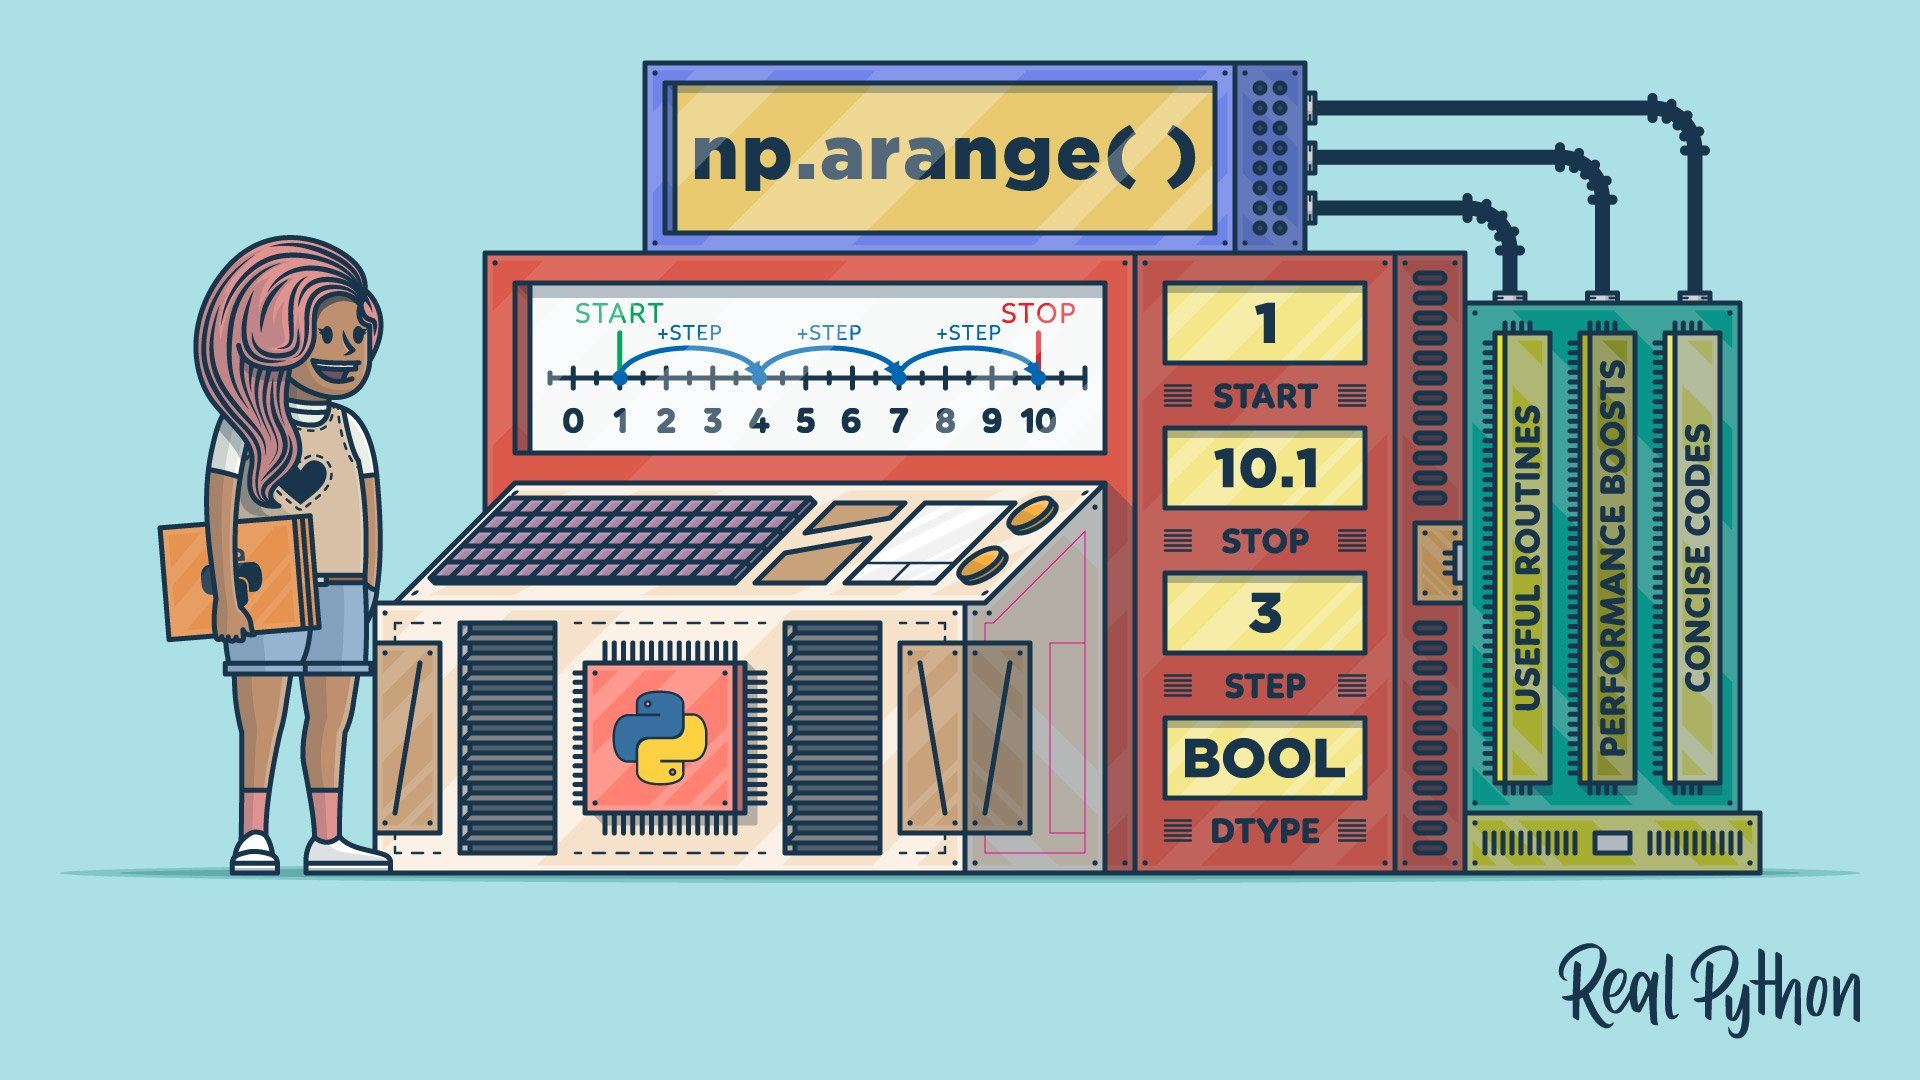 NumPy arange(): How to Use np.arange()